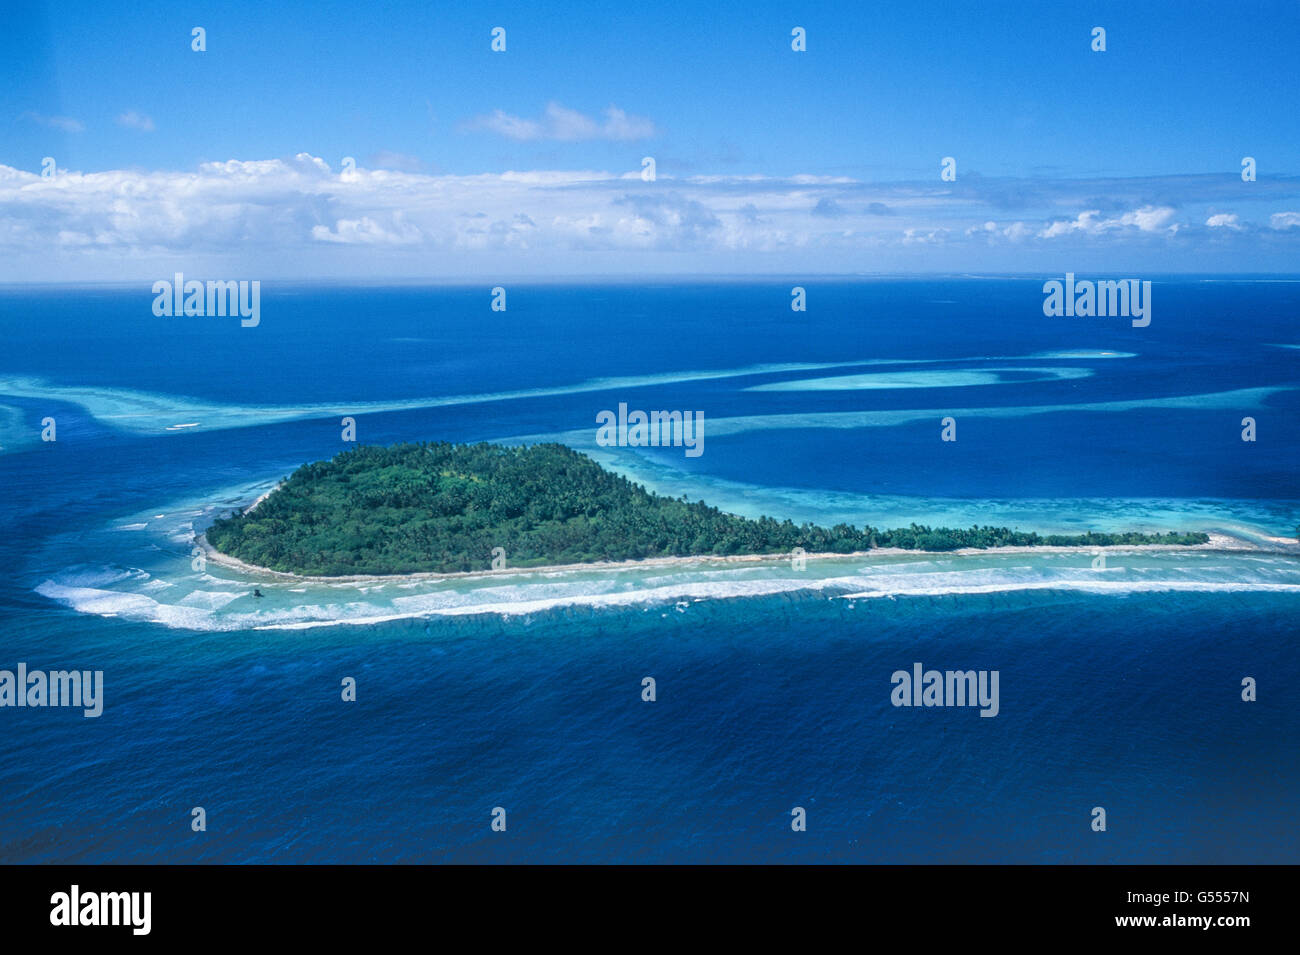 Marshall Islands, Micronesia: a coral islet that is part of Jaluit Atoll, located on Northeast Pass between the - Stock Image